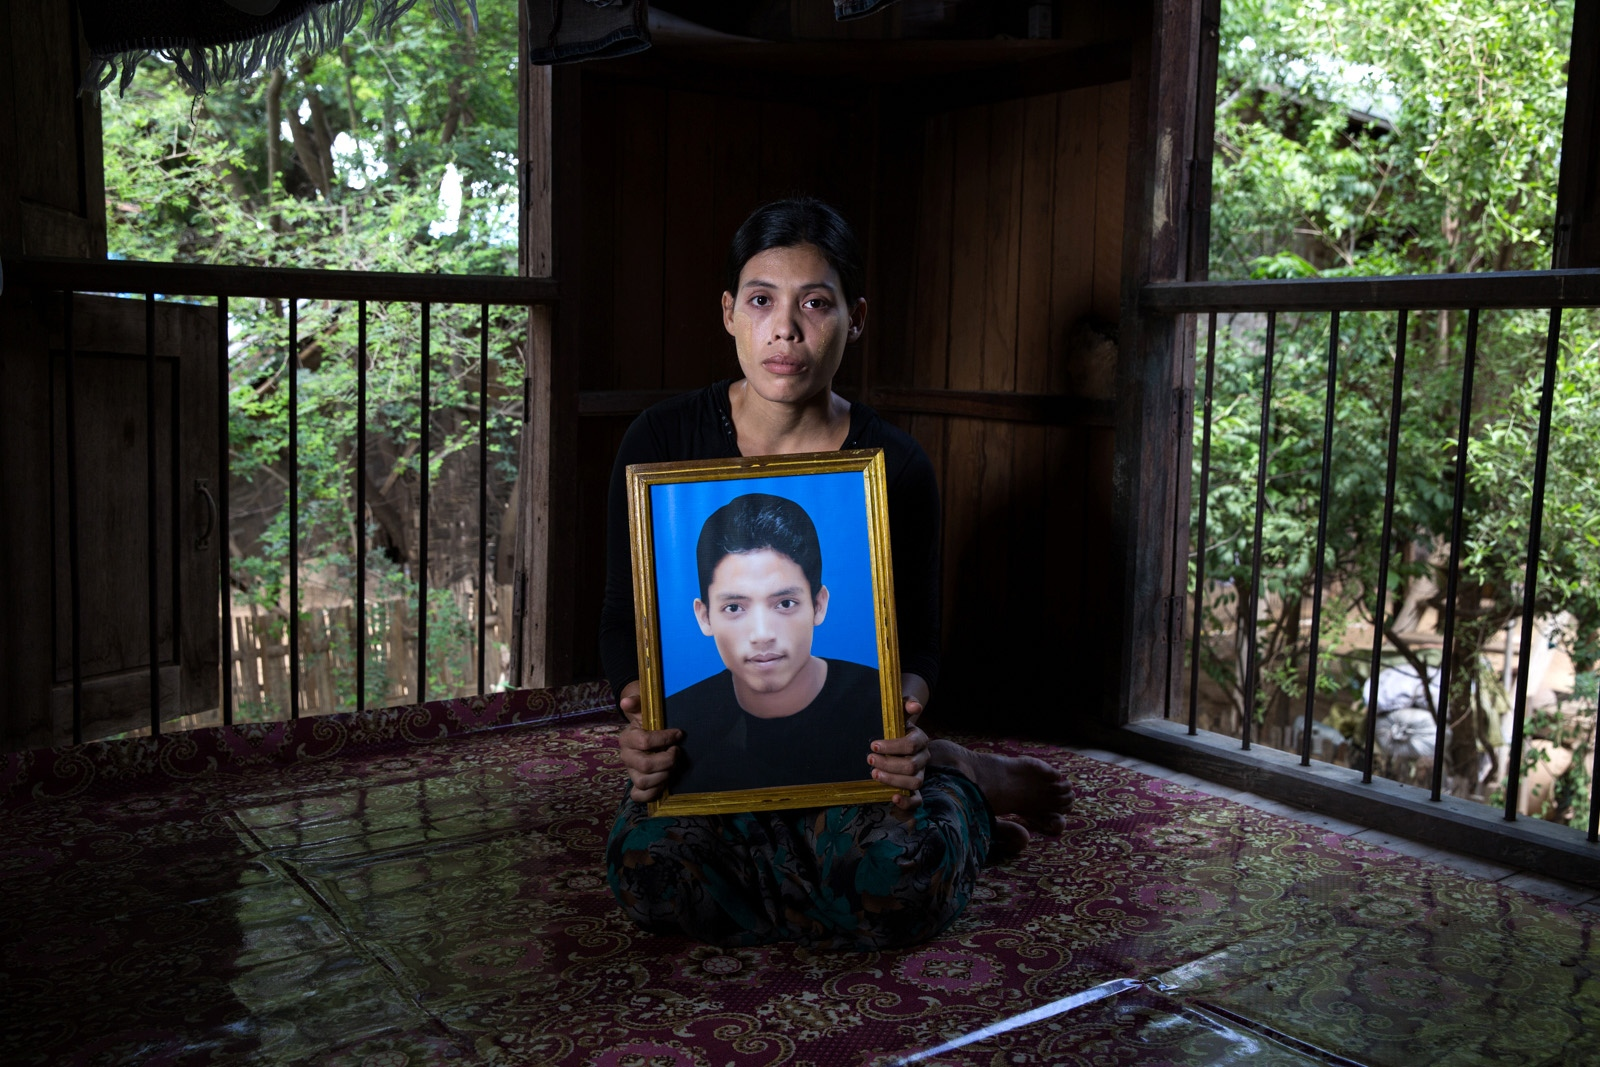 "The wife of arbitrarily detained Ko Ko Naing, 21, holds her husband's portrait in their family home. Special Branch officers arrested Ko Ko Naing at a checkpoint near Lashio in northern Shan State on November 14, 2014 for allegedly establishing the ""Myanmar Muslim Army."" Despite the government's failure to present evidence of the existence of the Myanmar Muslim Army or Ko Ko Naing's connection to the group, on December 7, 2015, the Aung Myay Tharsan Township Court in Mandalay Region sentenced Ko Ko Naing to five years in prison under Section 5(J) of the 1950 Emergency Provisions Act. In October 2016, the Myanmar government repealed the notoriously controversial 1950 Emergency Provisions Act, yet Ko Ko Naing remains detained in Mandalay Obo prison under the now defunct Act."